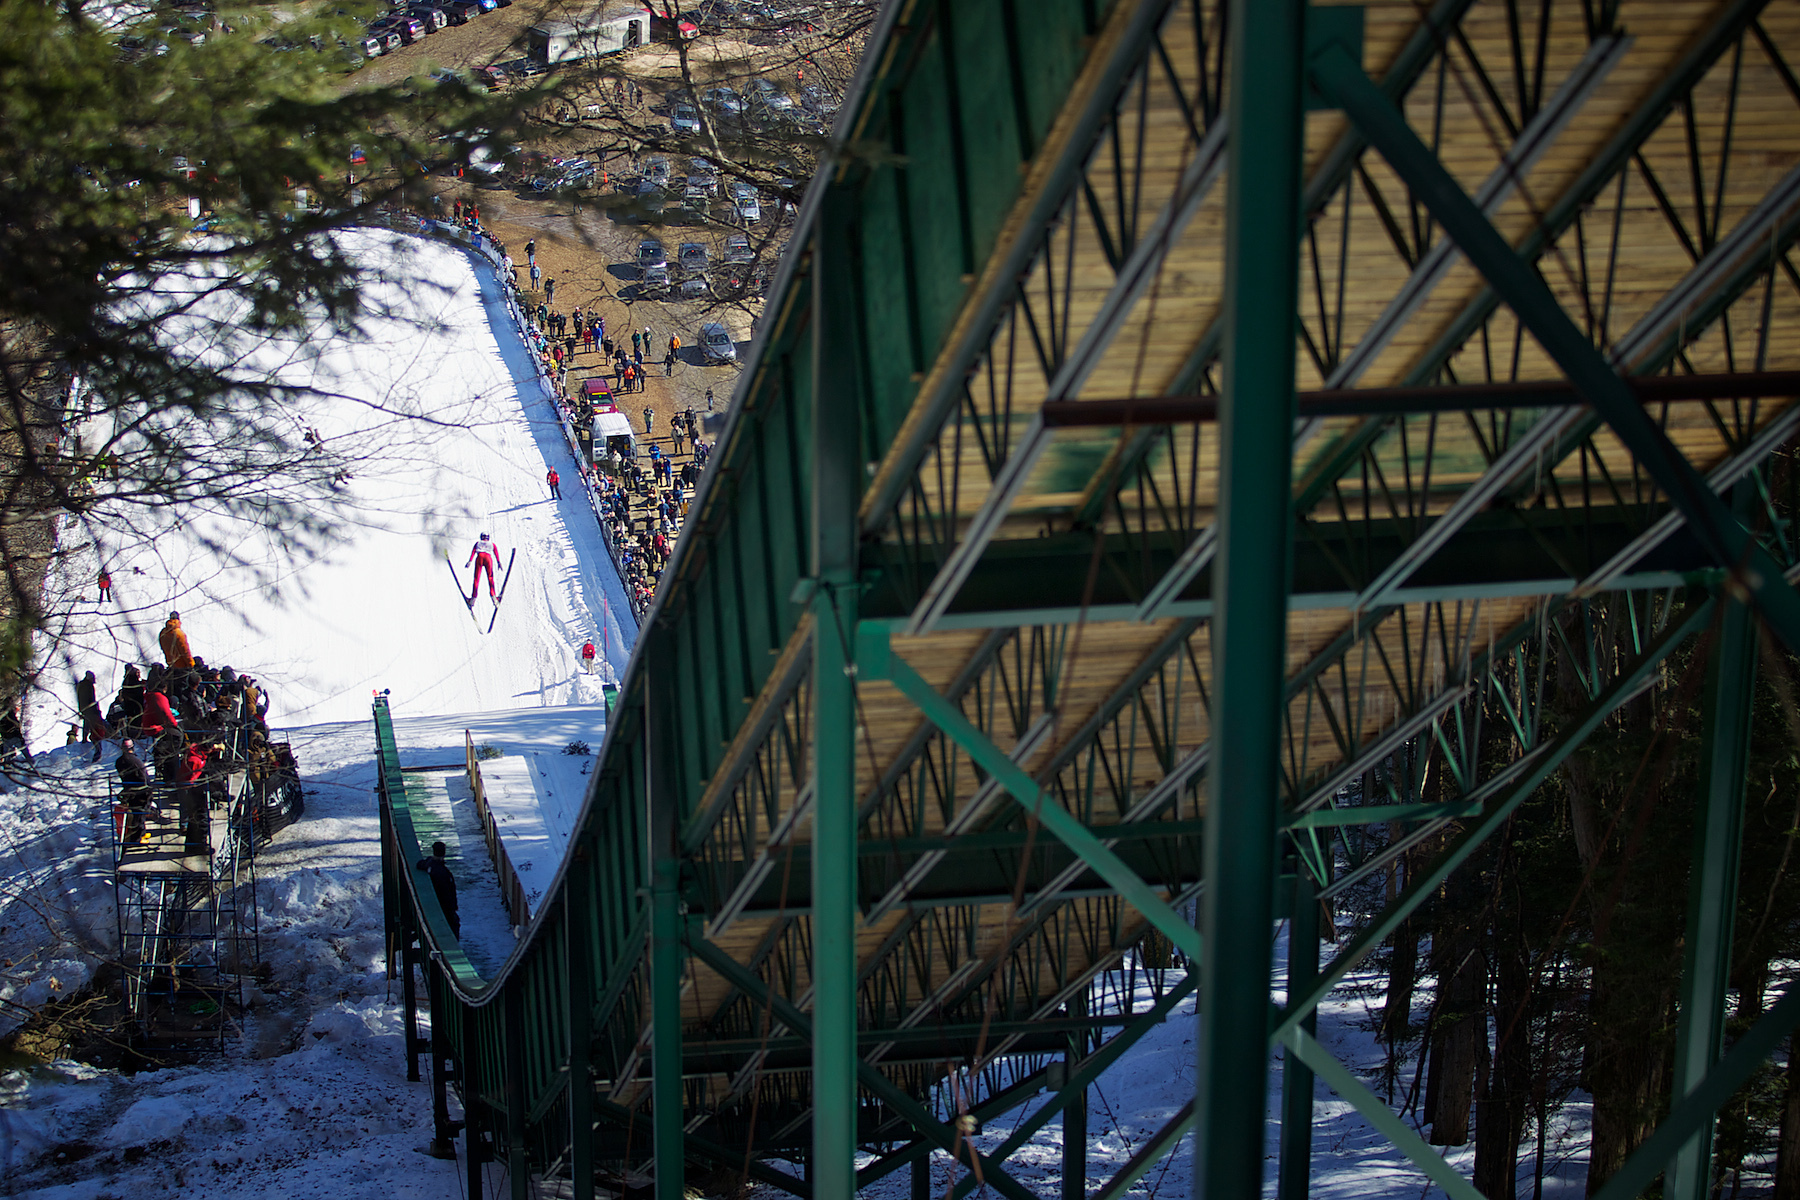 Athlete Somer Schrock takes flight early in the competition.  Somer was competing in the Junior II field and finished 13th with a score of 153.5.  Harris Hill Ski Jump, Brattleboro, Vermont. 2011